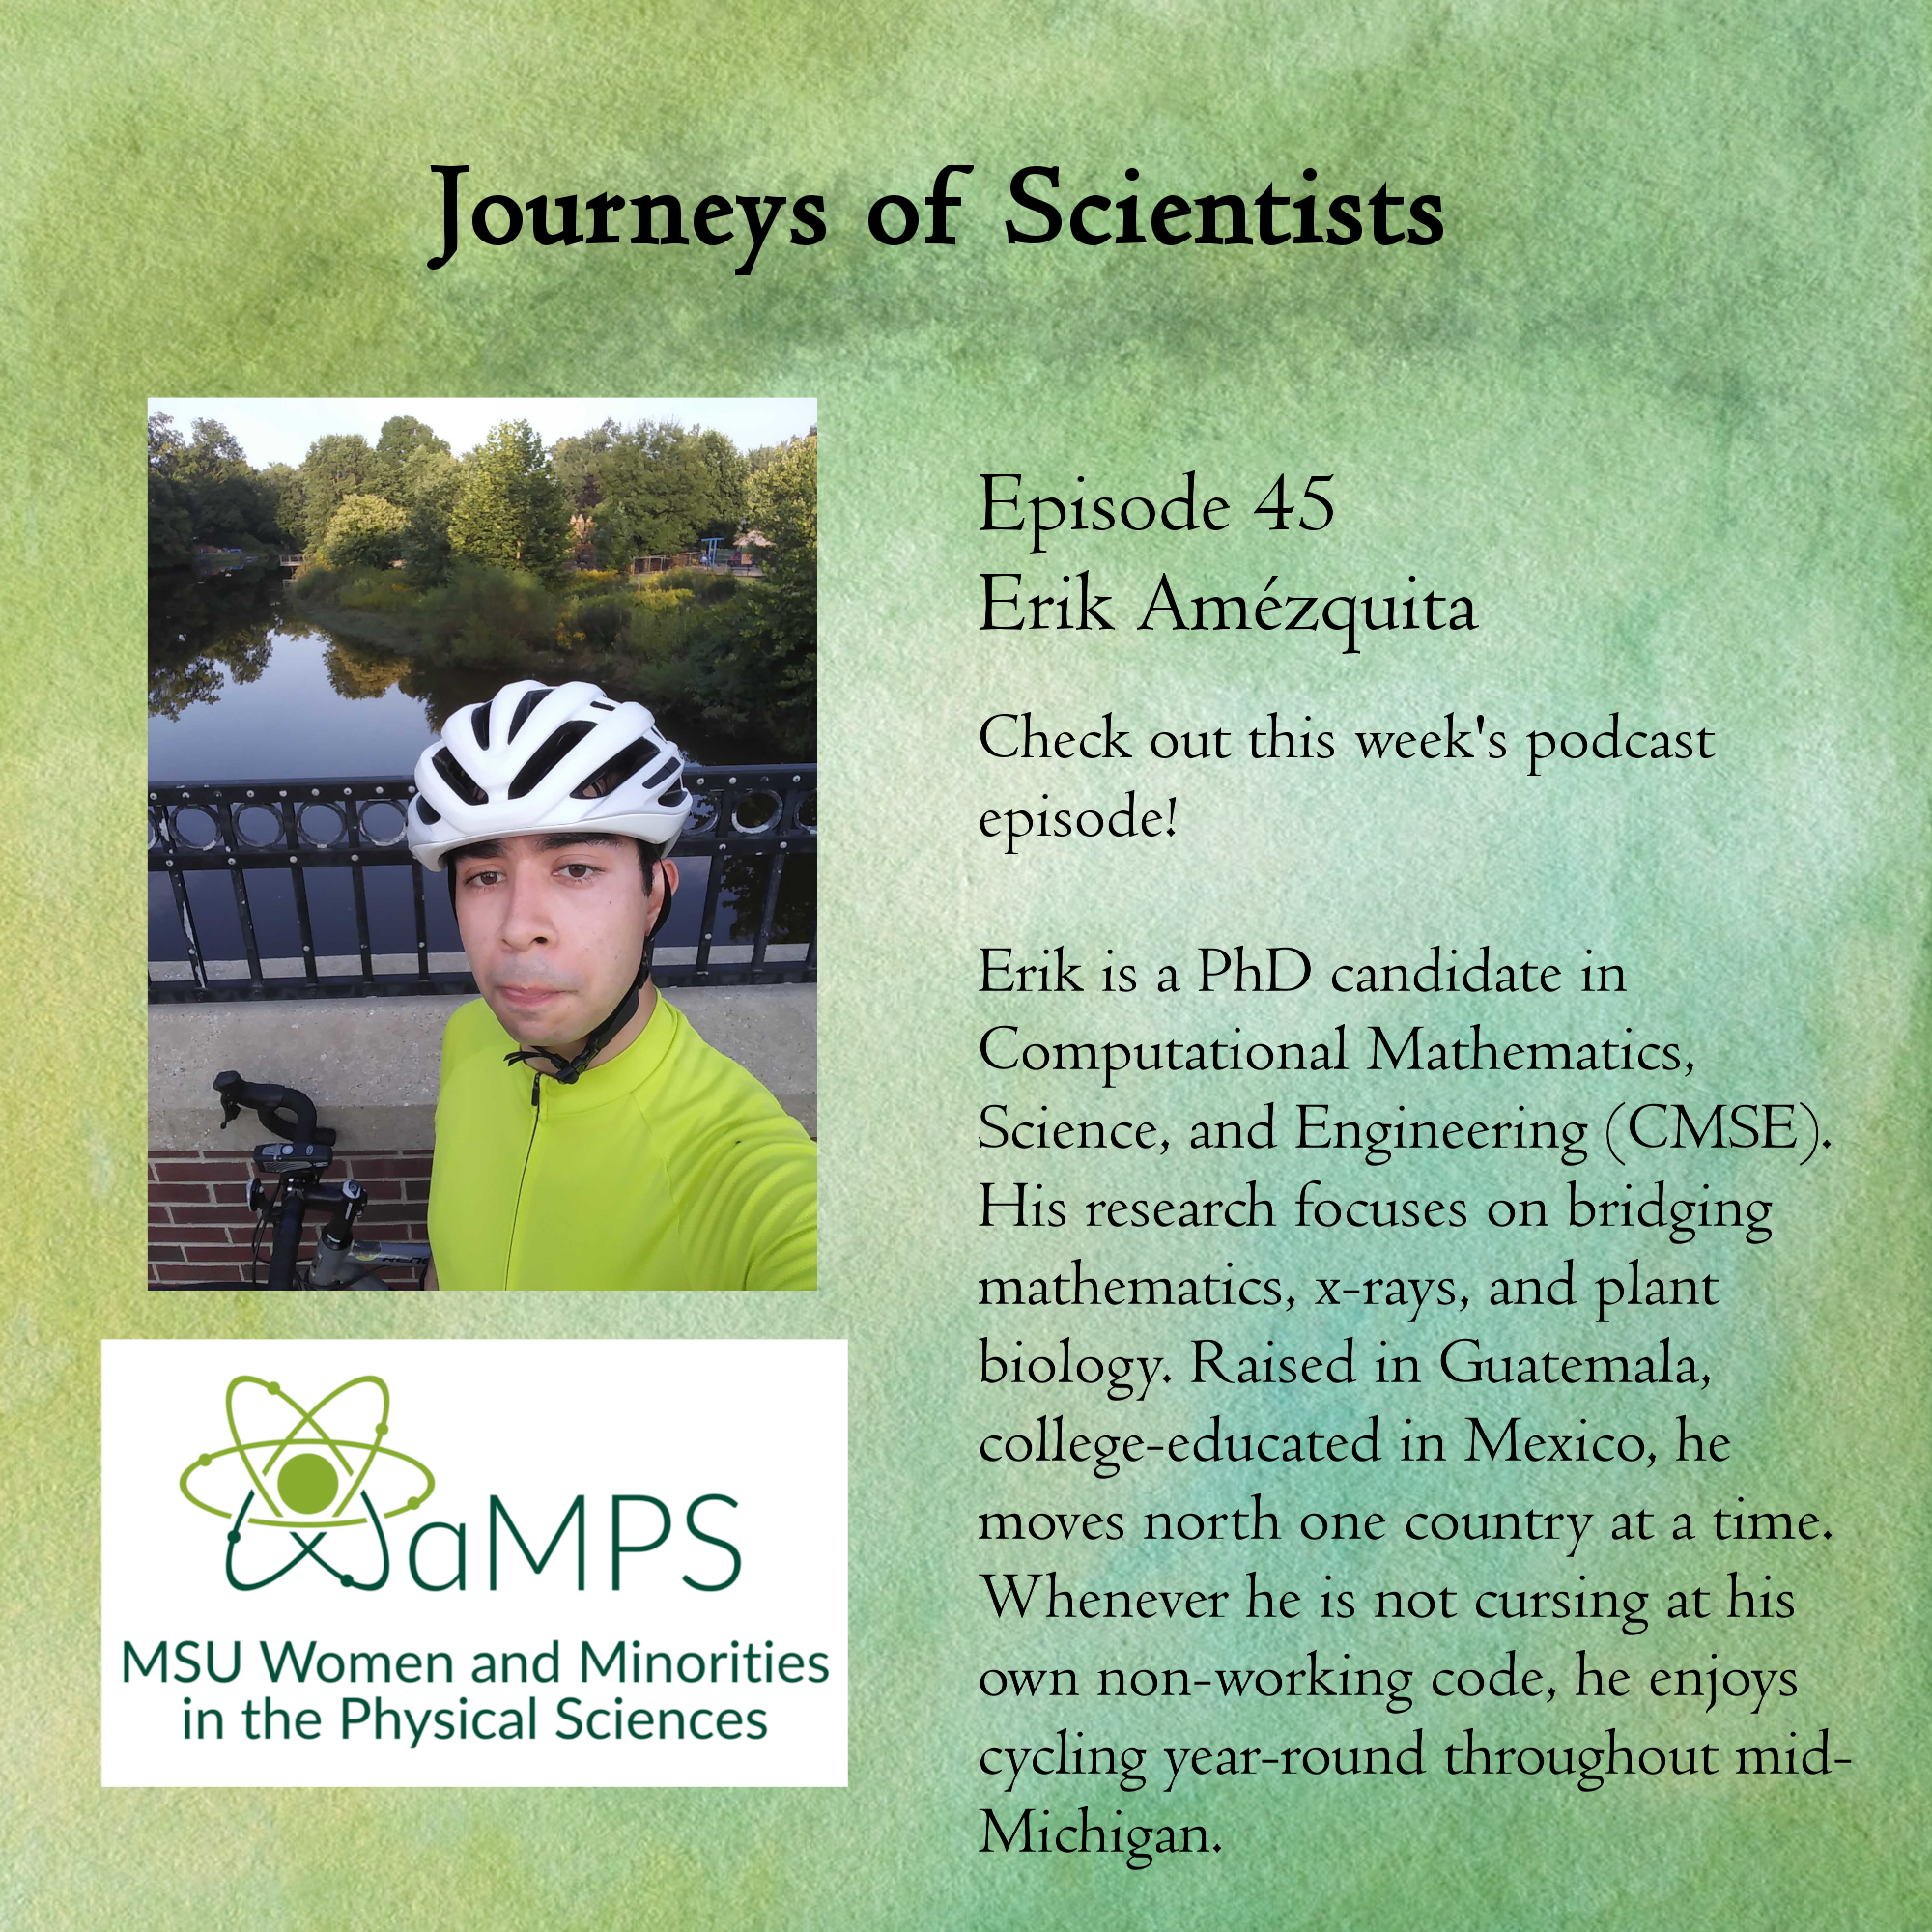 Erik is a PhD candidate in Computational Mathematics, Science, and Engineering (CMSE). His research focuses on bridging mathematics, x-rays, and plant biology. Raised in Guatemala, college-educated in Mexico, he moves north one country at a time. Whenever he is not cursing at his own non-working code, he enjoys cycling year-round throughout mid-Michigan.